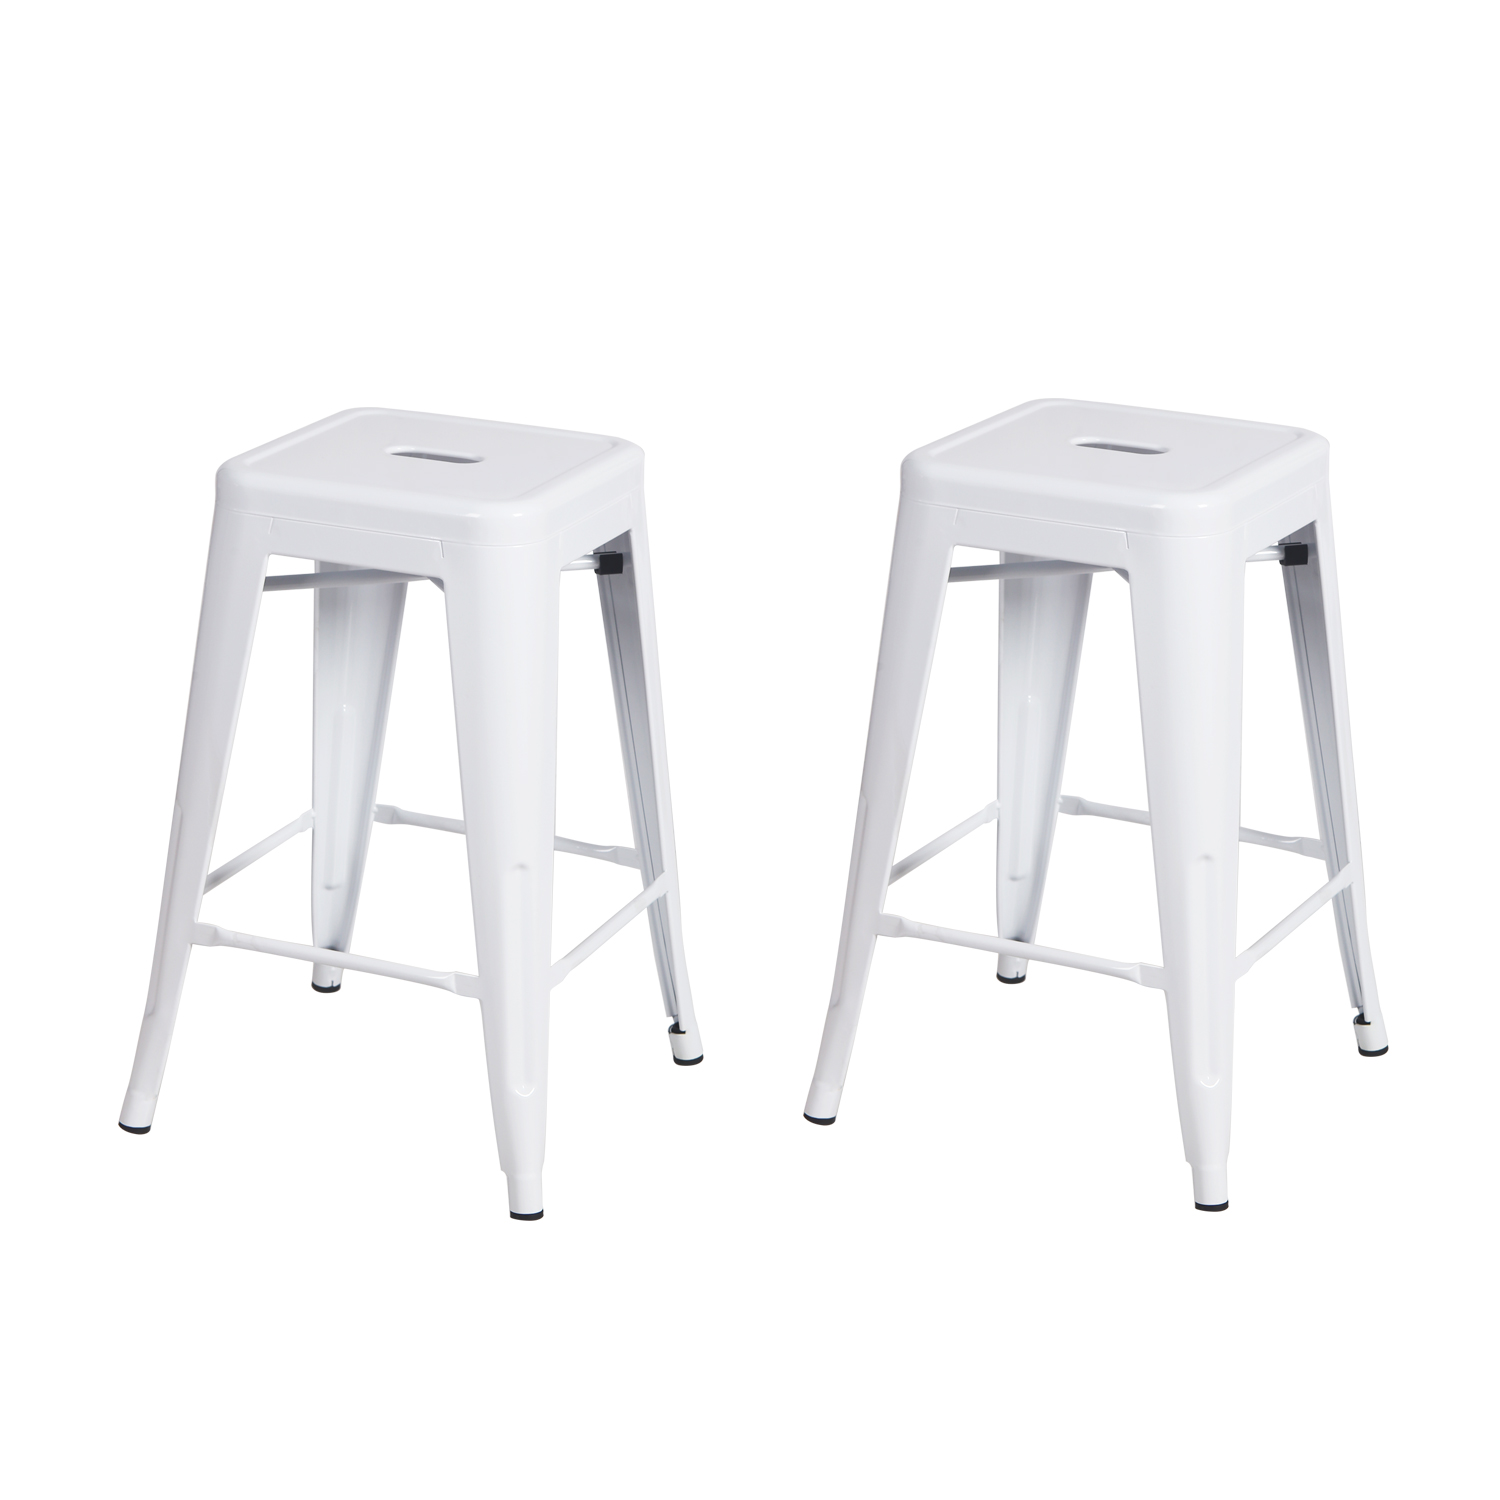 Decenthome Decenthome 24 Inch Glossy White Metal Tolix Style Chair